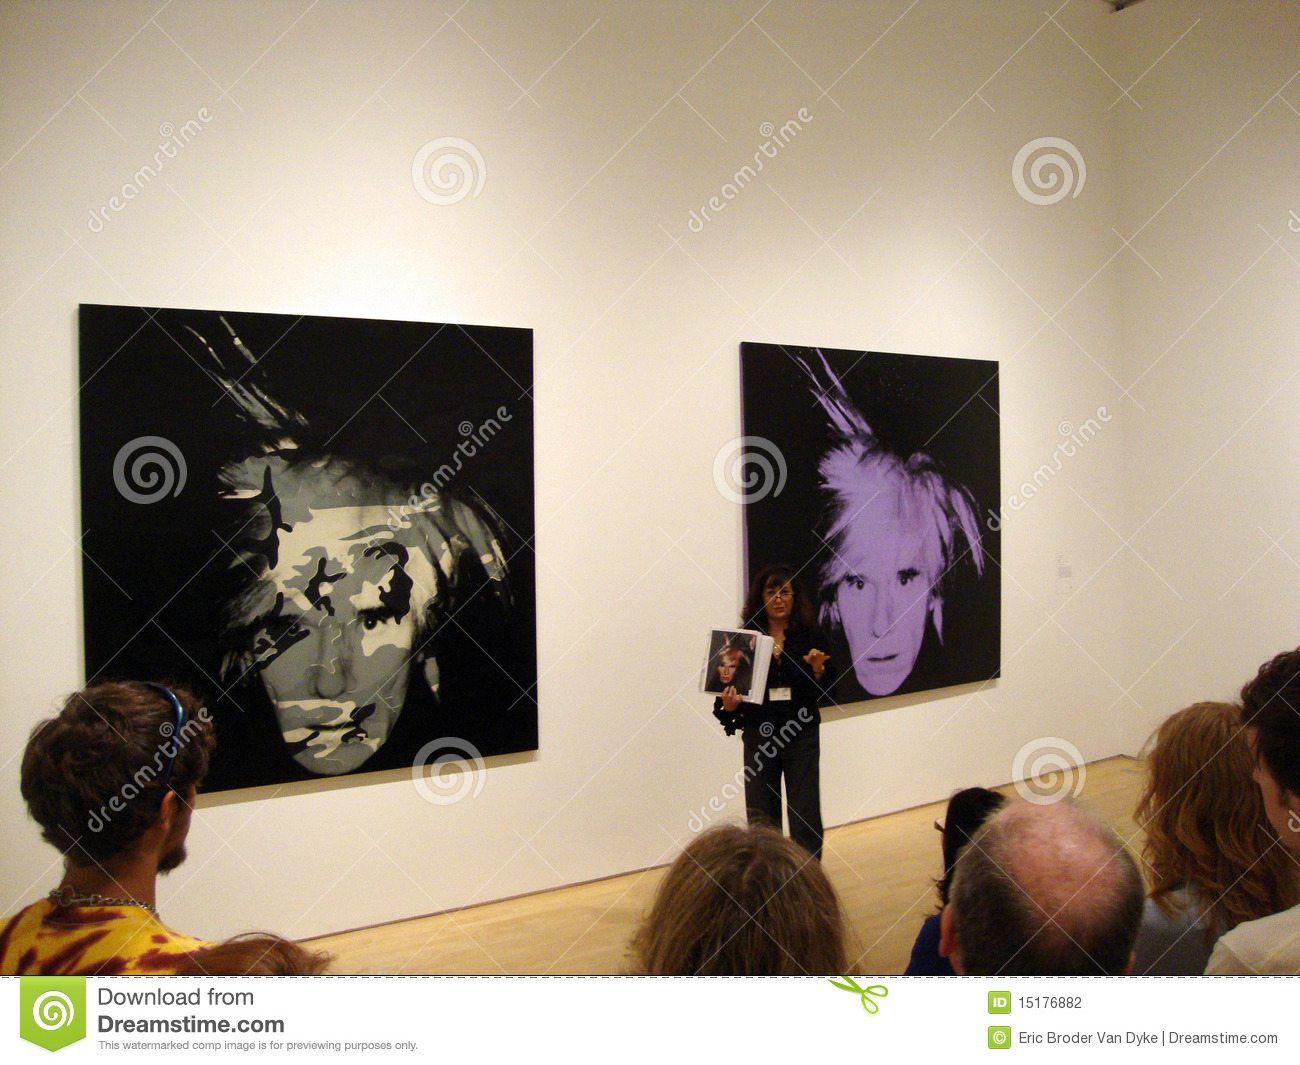 Il docent di MOMA parla dell autoritratto dell Andy Warhol